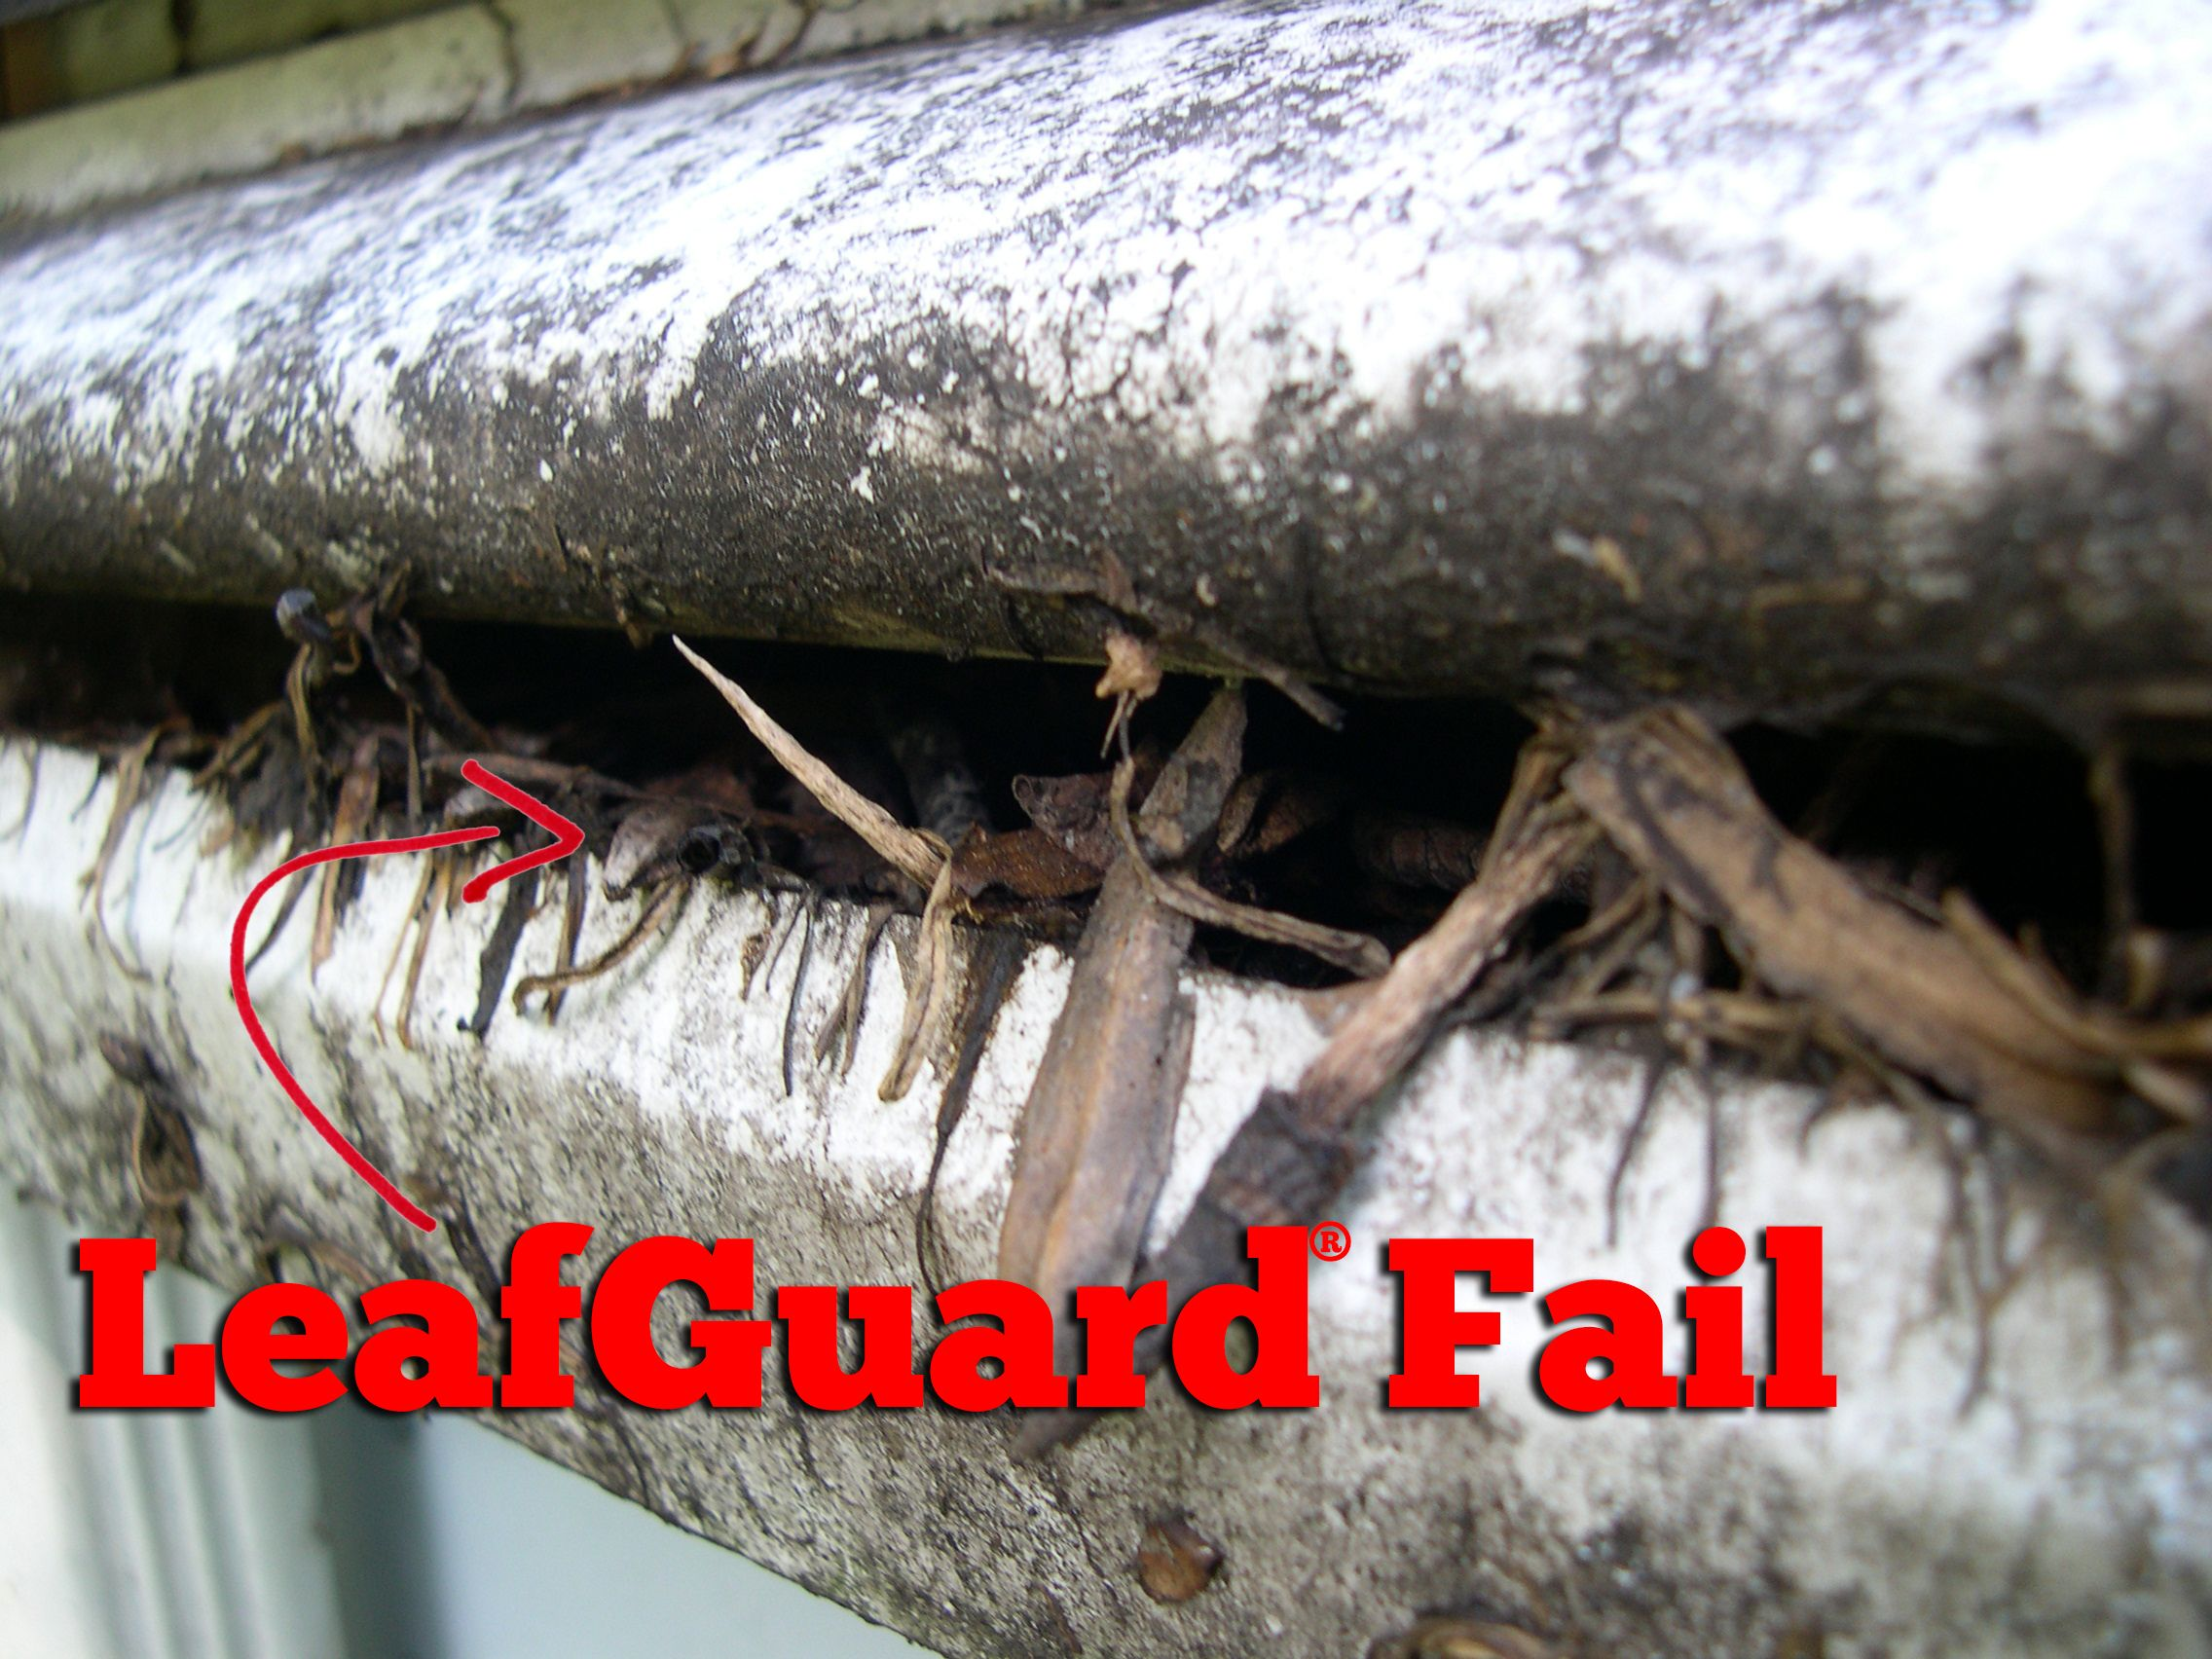 Mold Dirt Leaves Those Are Three Things That You Do Not Want In Your Gutters Avoid The Hassle Of Having To Cleaning Gutters Gutter Protection Gutter Guard